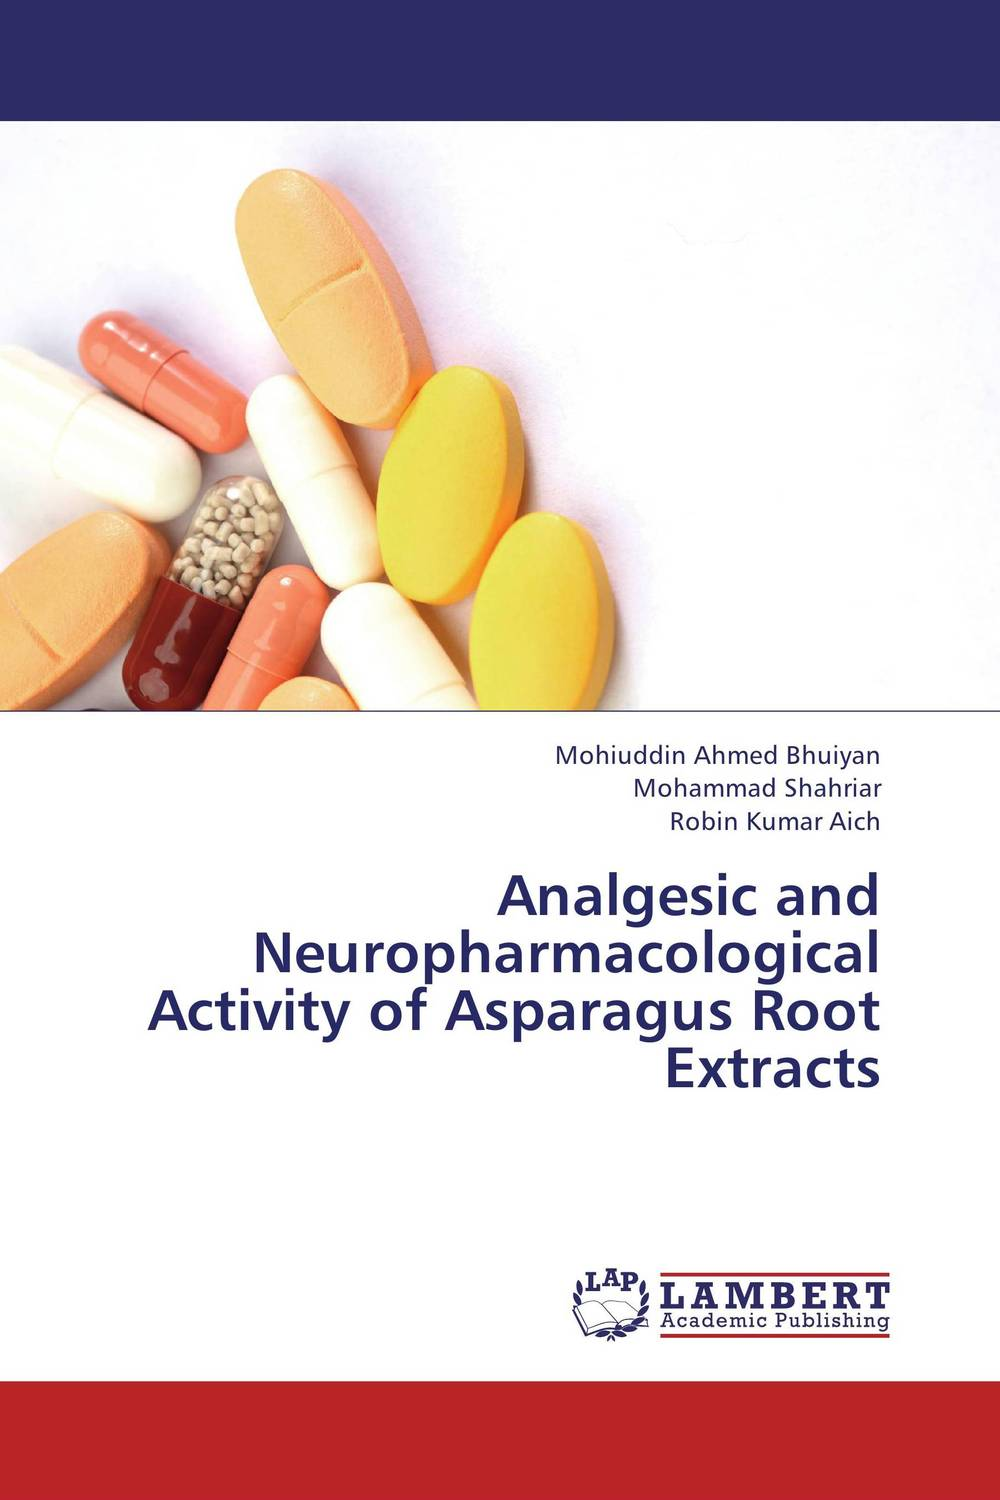 Analgesic and Neuropharmacological Activity of Asparagus Root Extracts